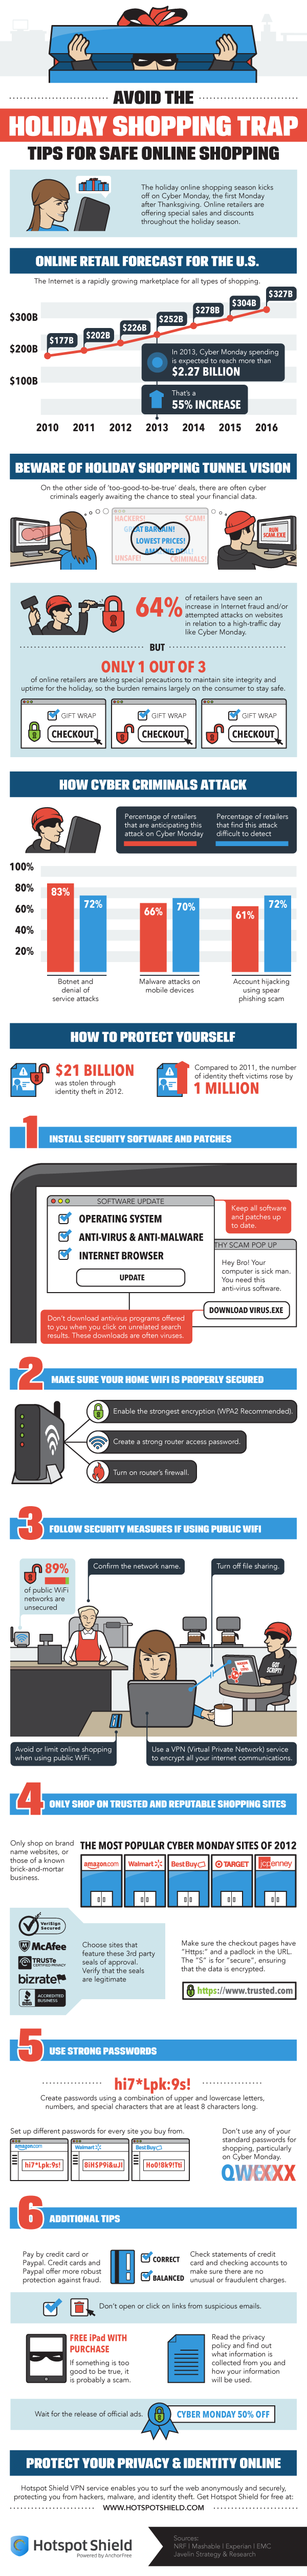 Infographic: Avoid The Cyber Monday Trap Tips For Safe Online Shopping